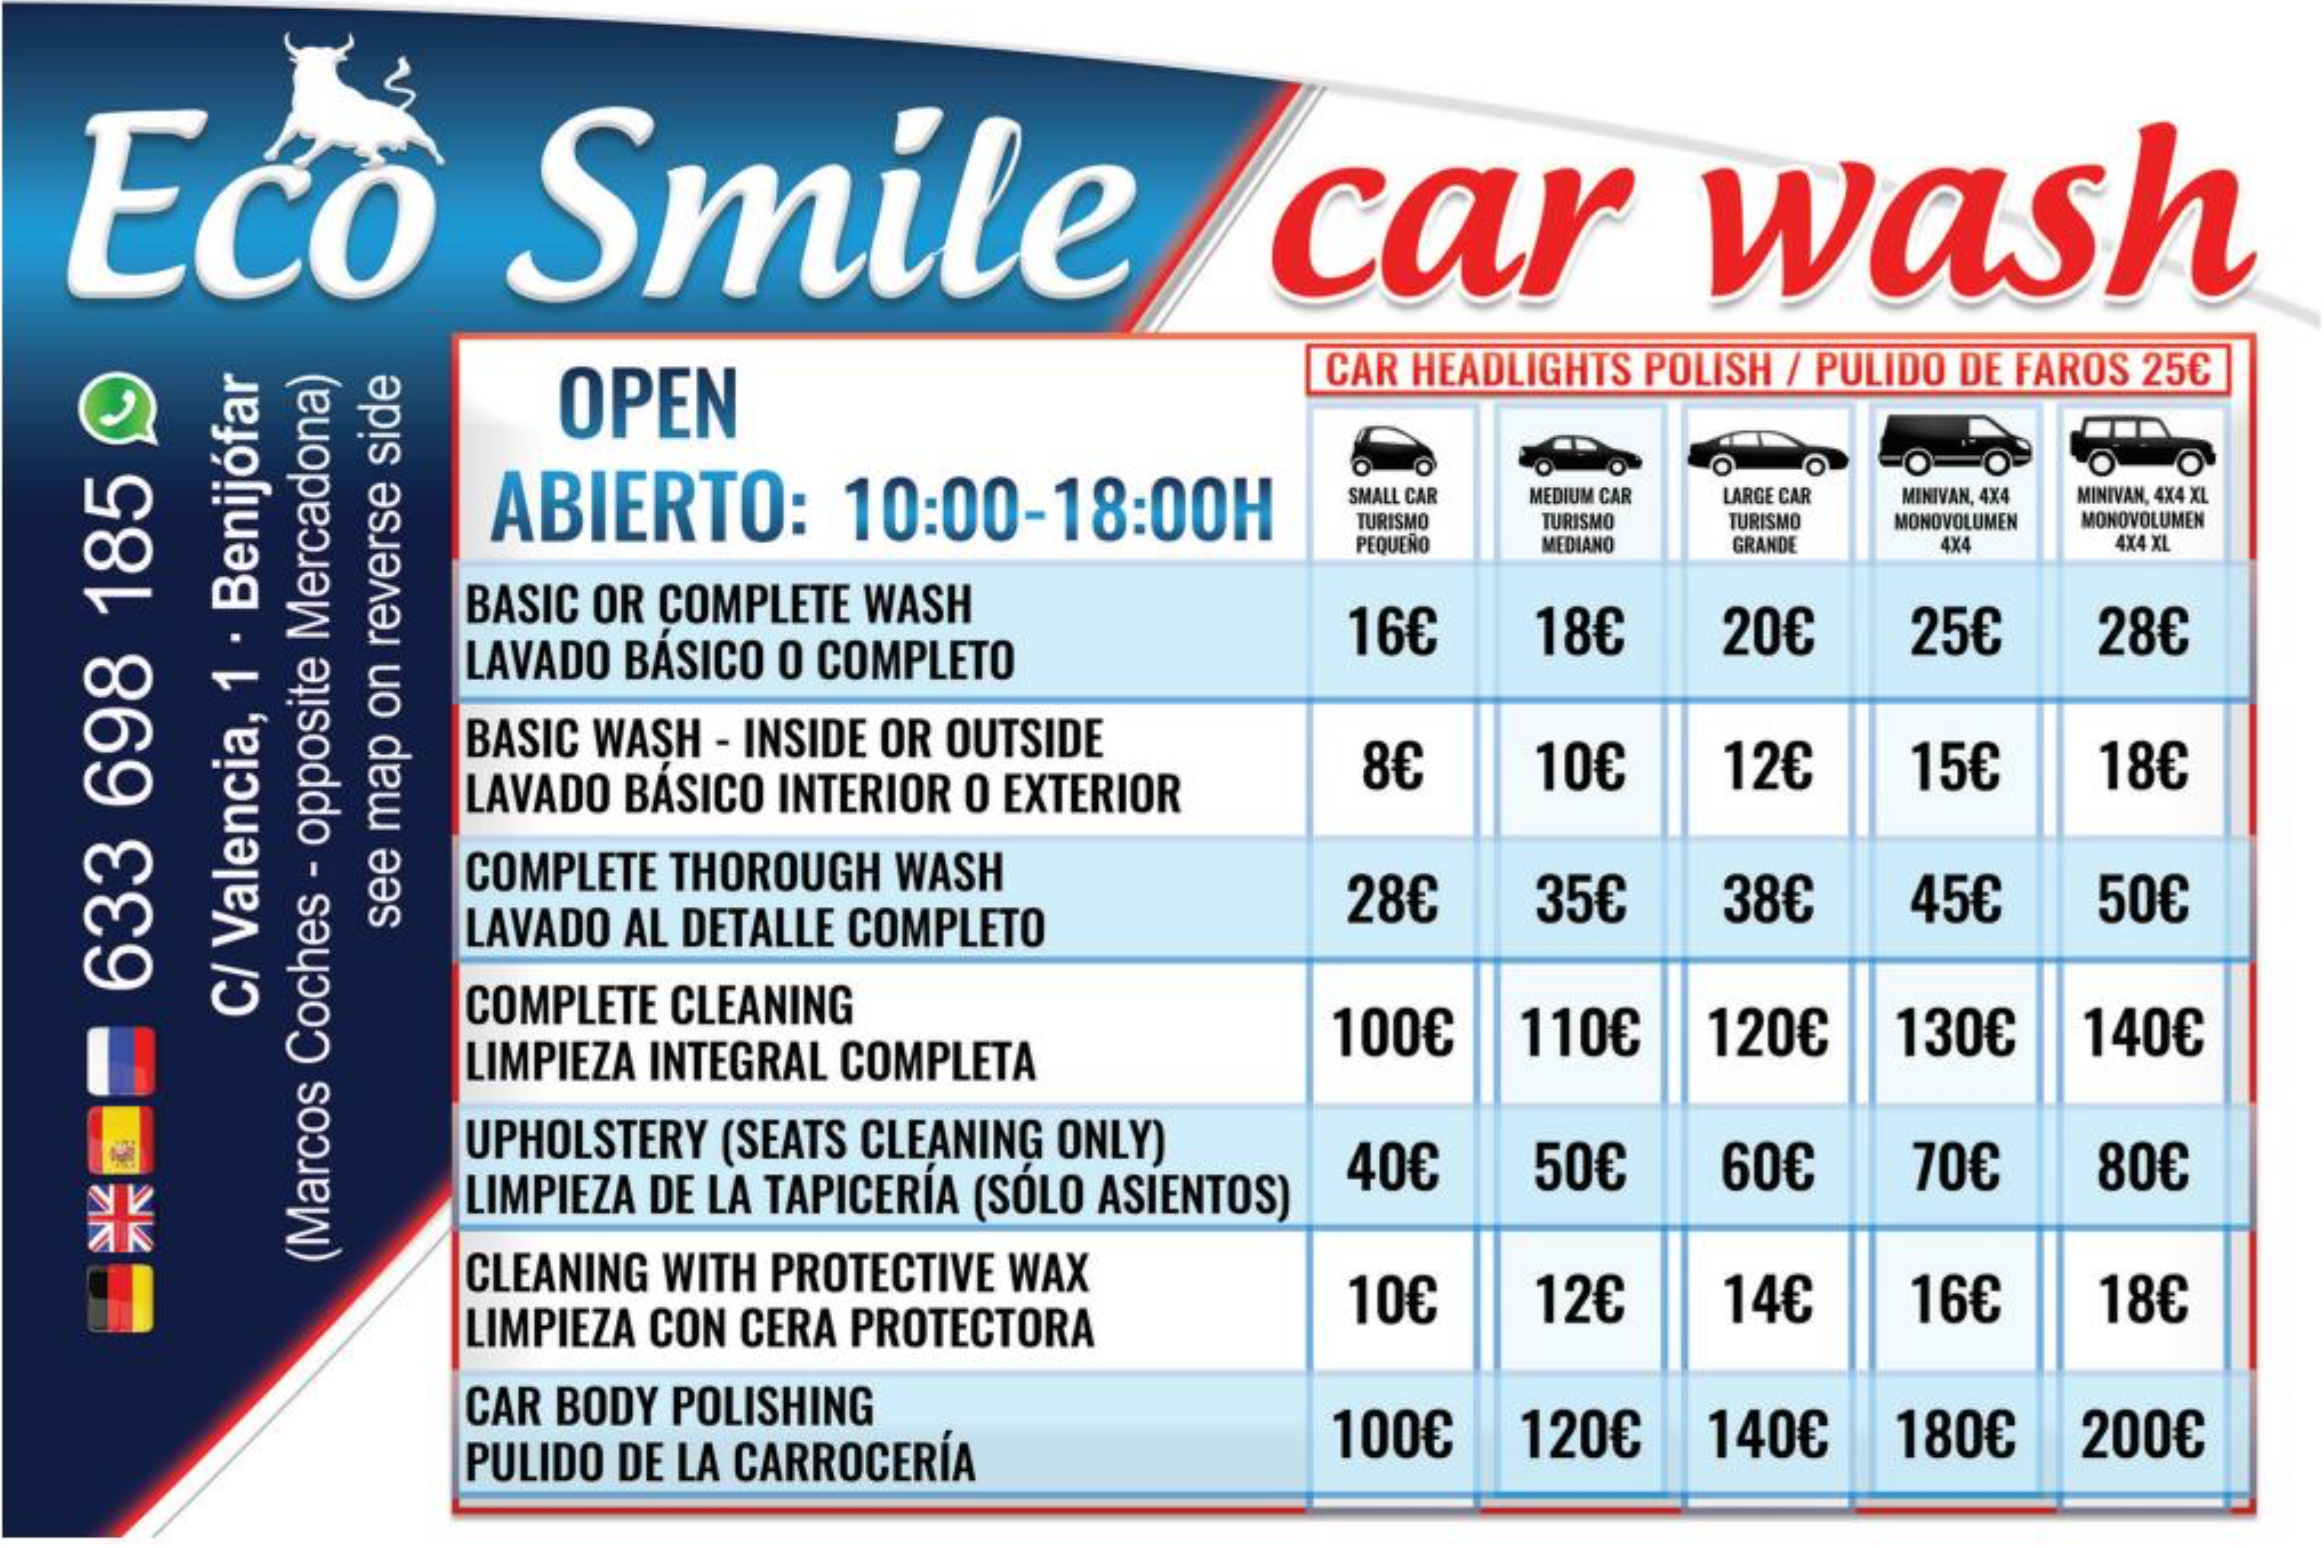 Eco Smile Car Wash (Marcos Coches) - Costa Car Trader